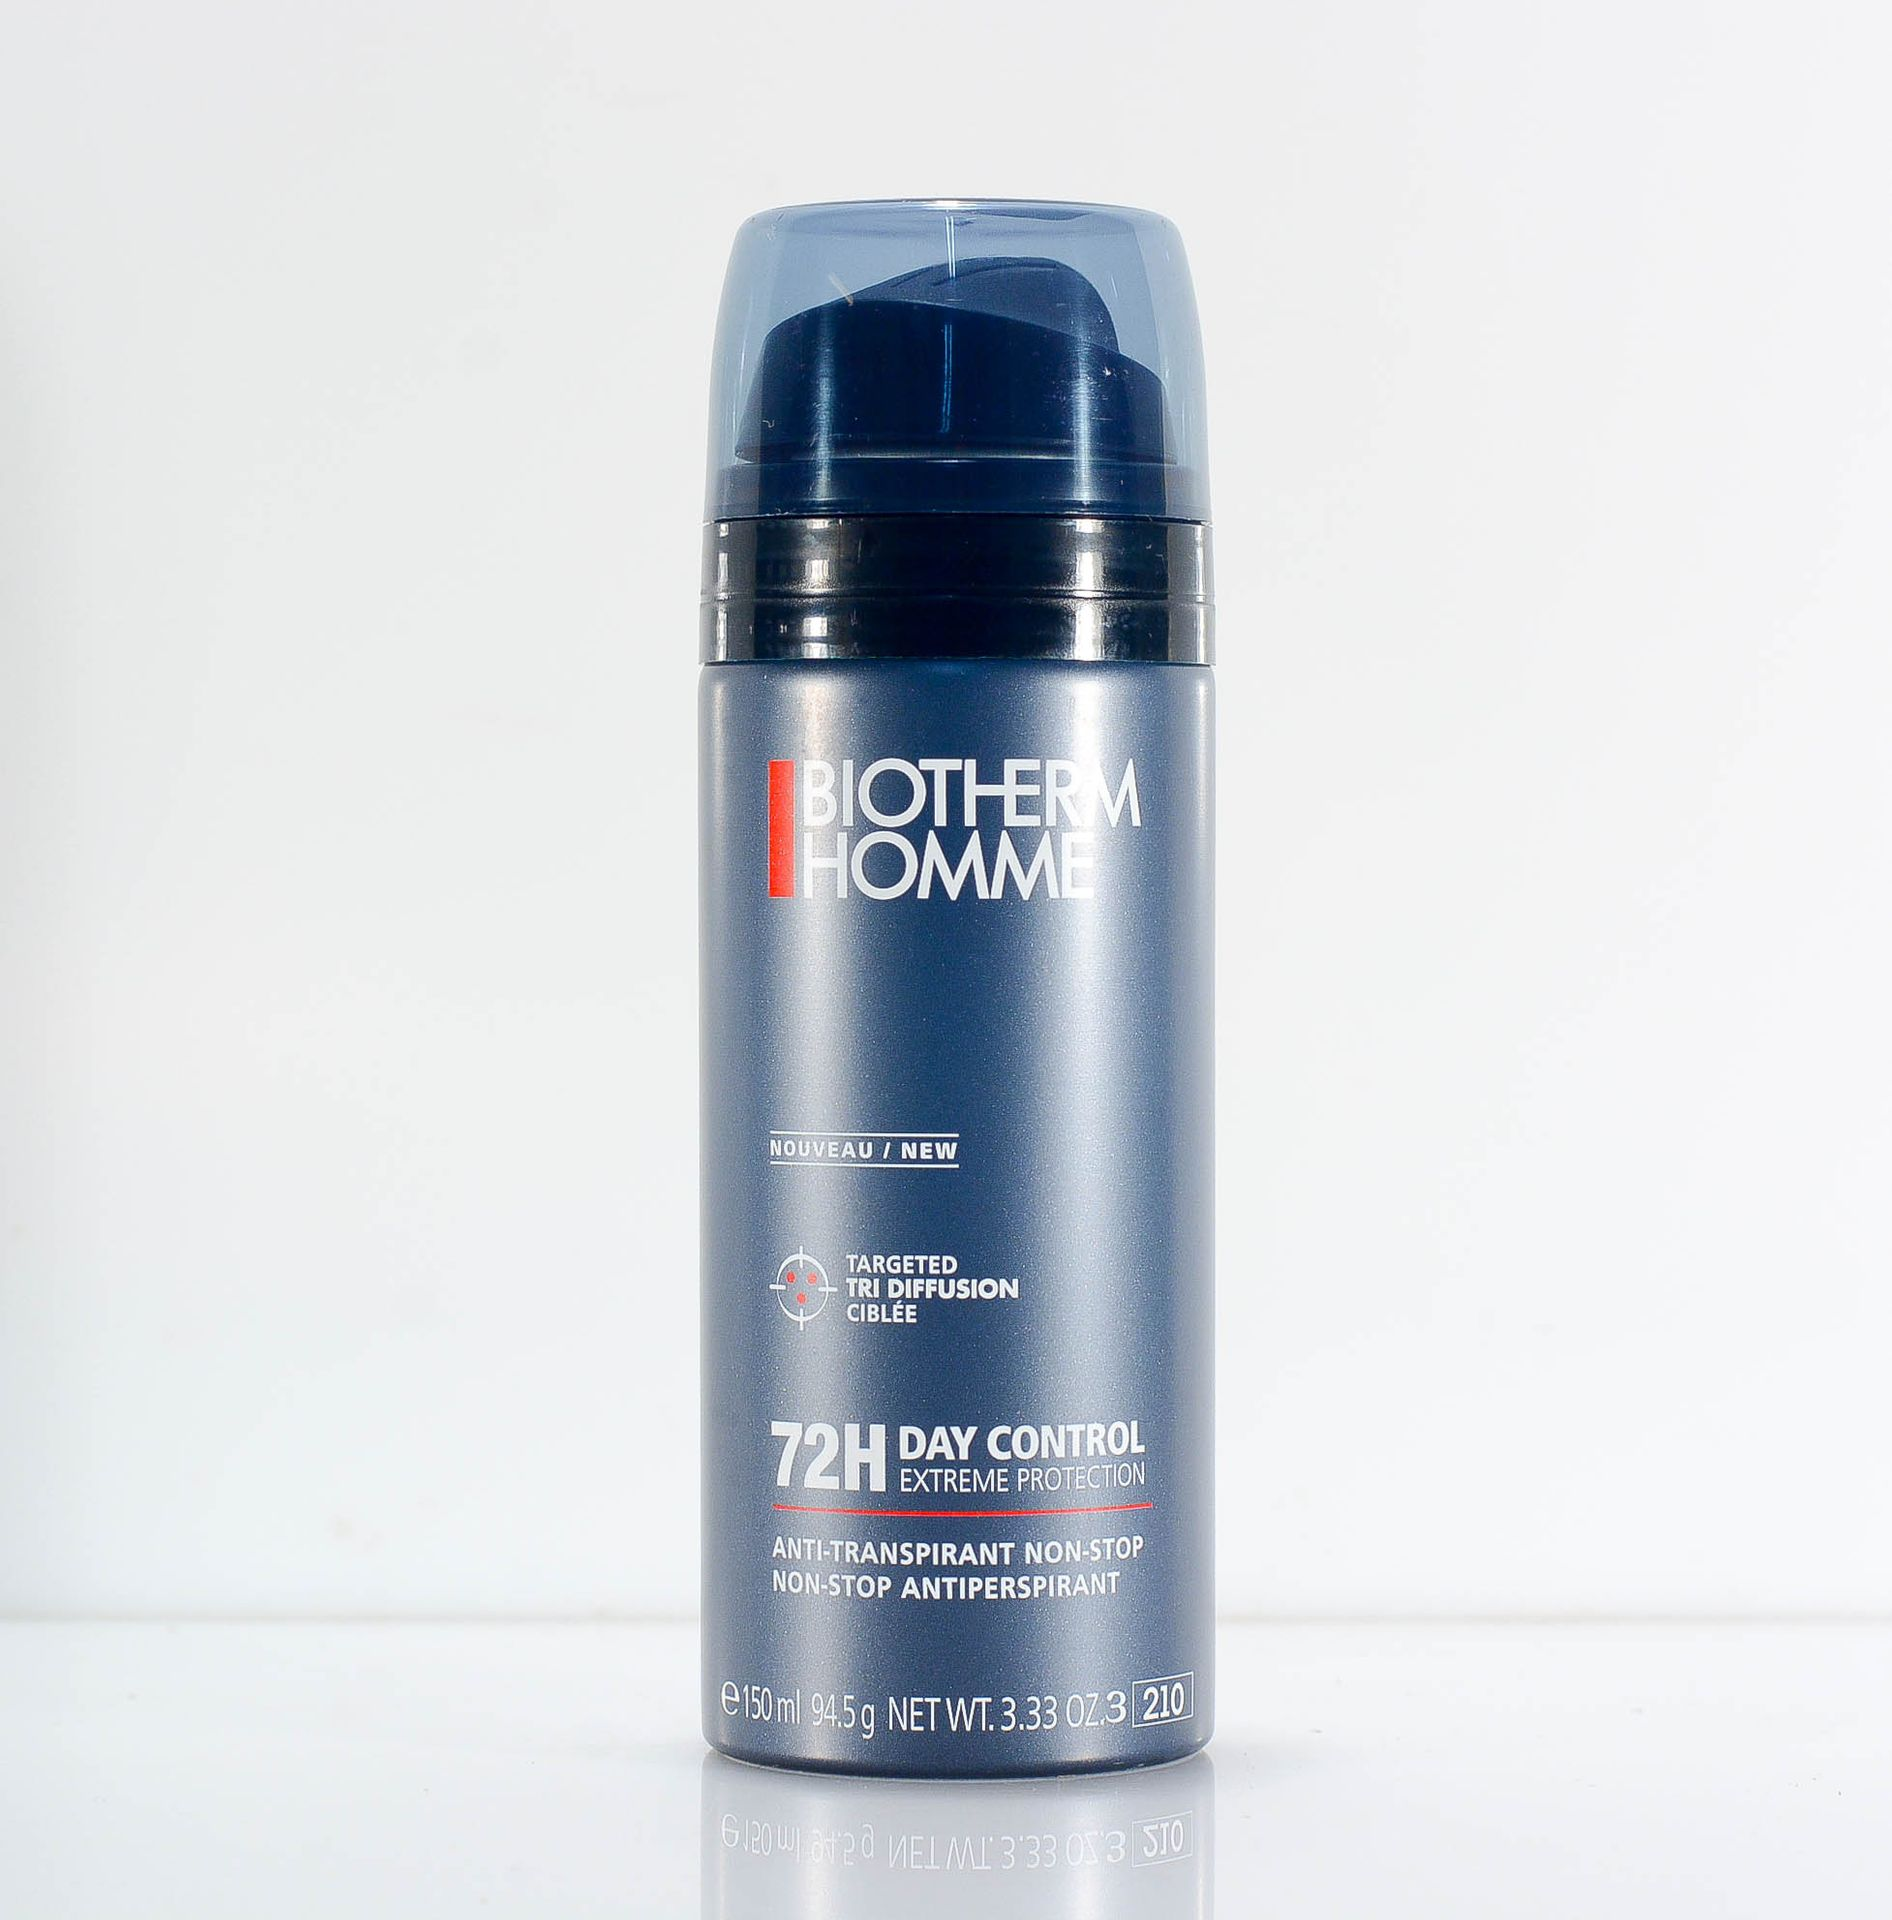 Biotherm Homme Day Control Extreme Protection 72 h Deo Spray 150 ml